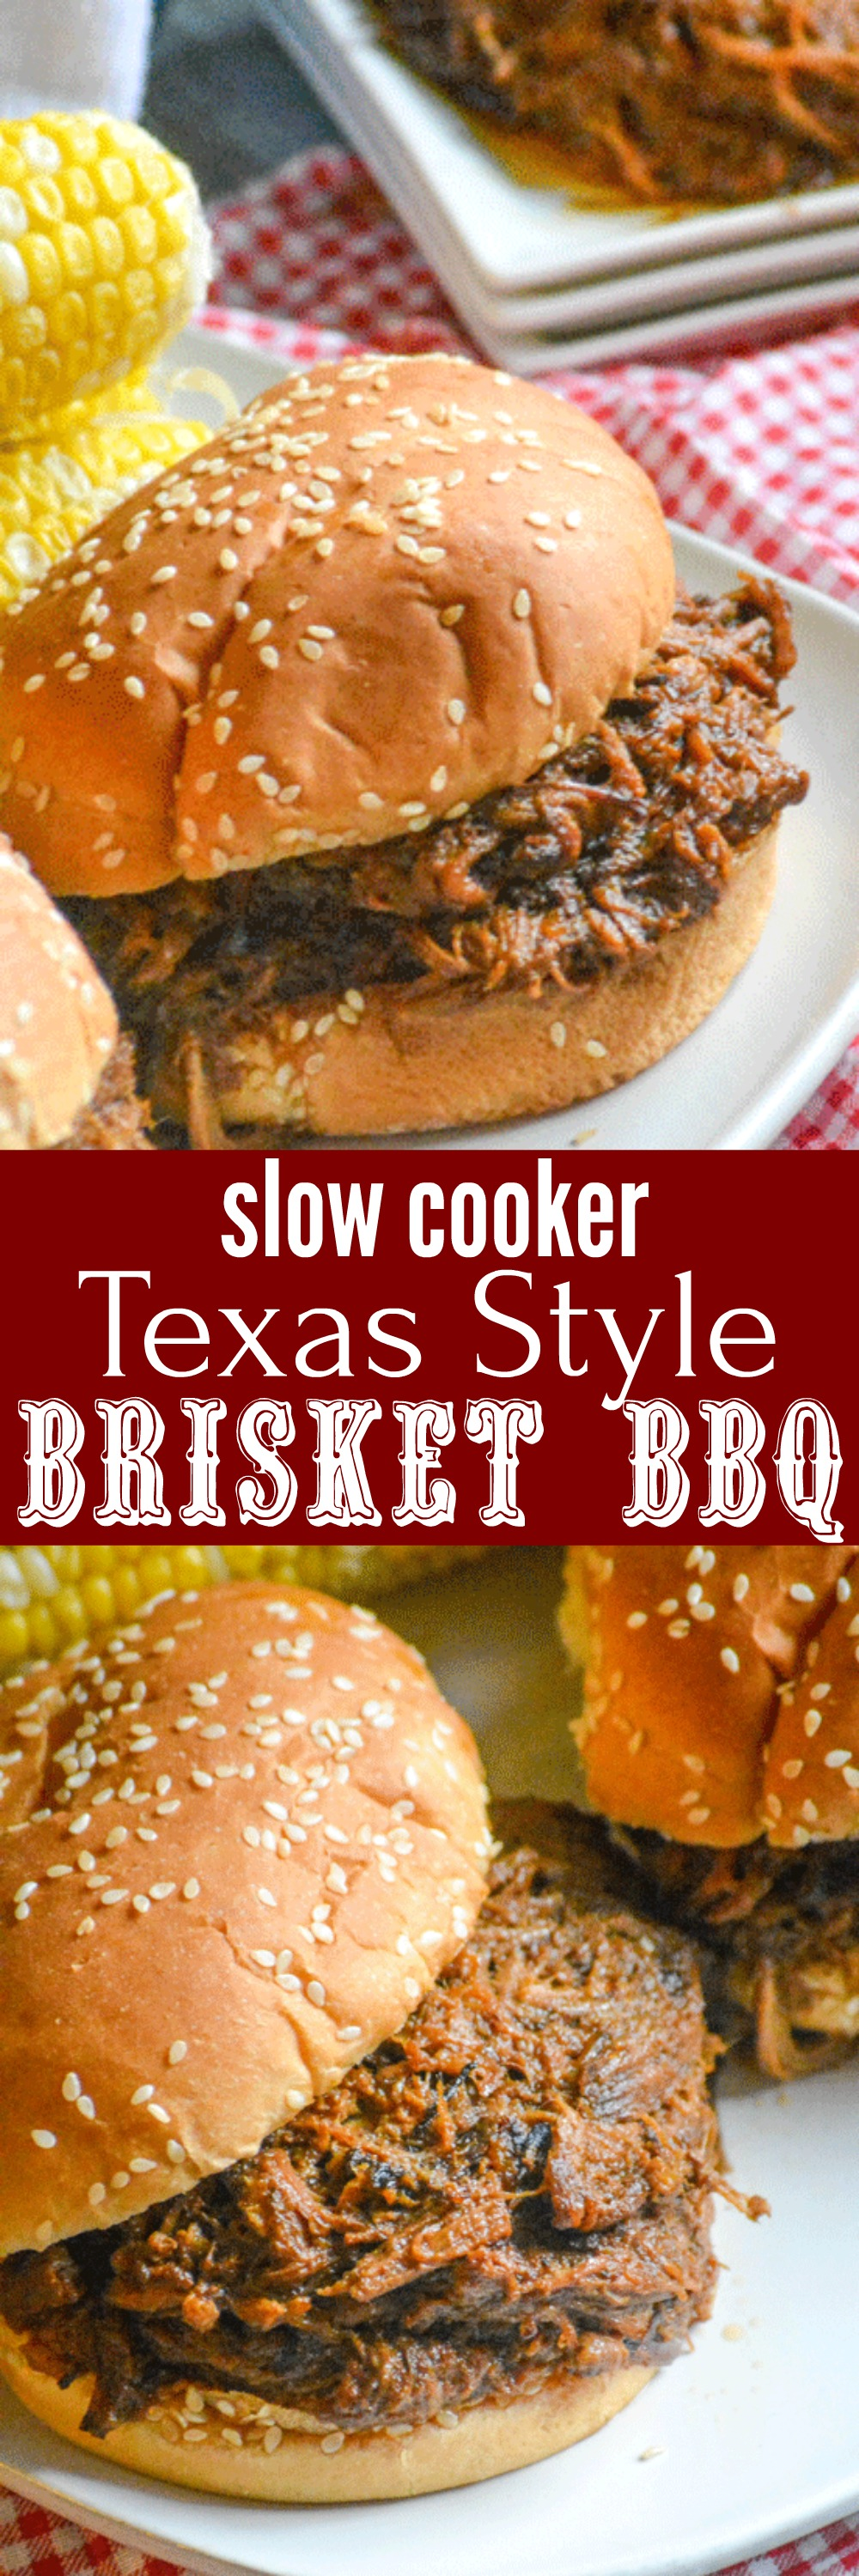 Who doesn't love a good plate of barbecue? This Slow Cooker Texas Style Barbecue Brisket Sandwiches is easy, easy enough for any day. Piled high on fluffy buns, these sandwiches are a filling meal that's finger lickin' good.